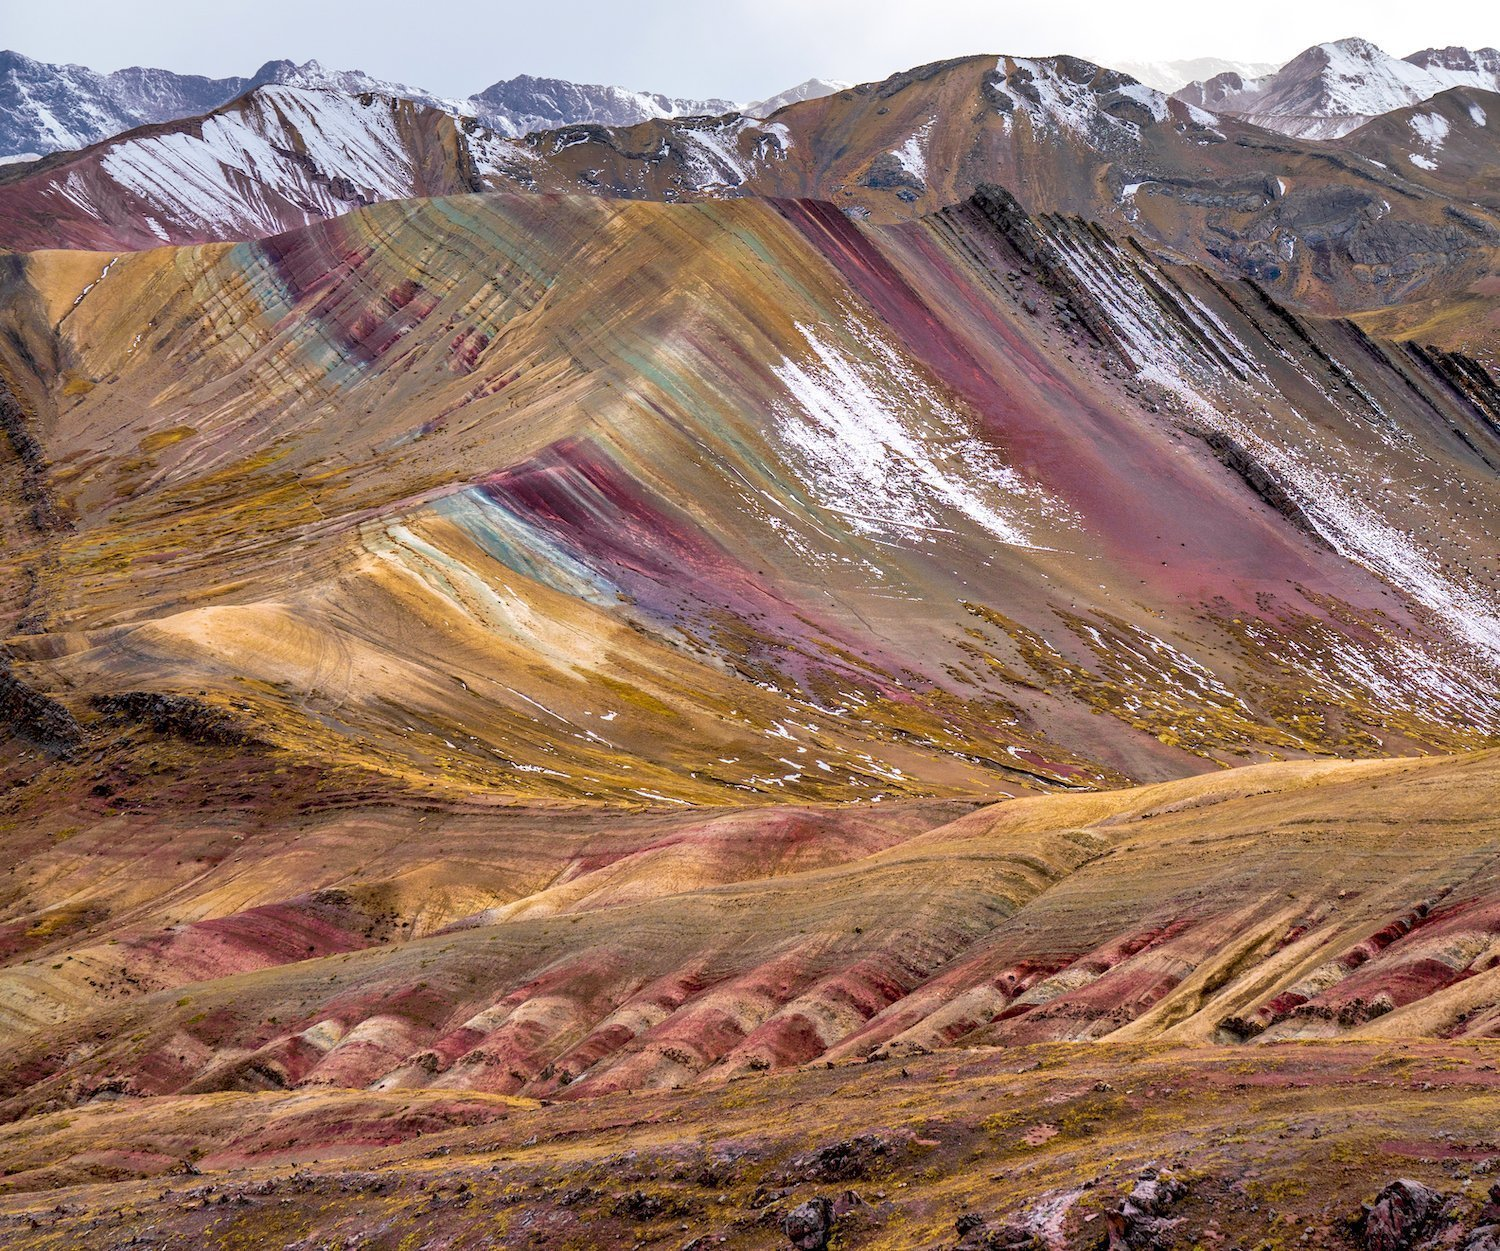 Palcoyo Rainbow Mountain Peru by Nate Luebbe for Killa Expeditions small